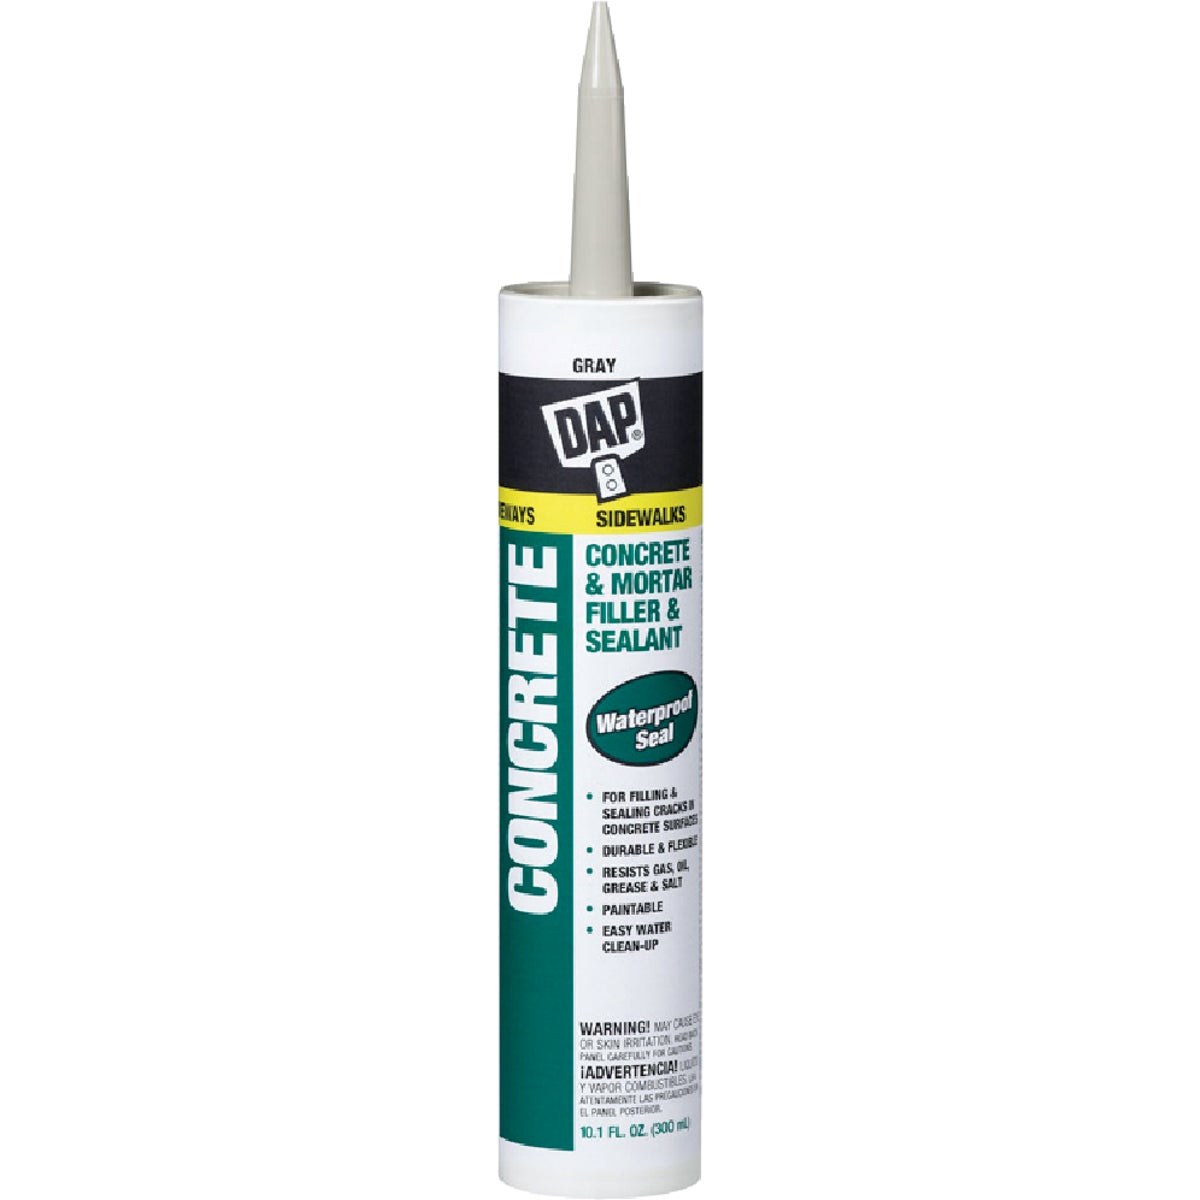 GRAY CONCRETE SEALANT - 18096 by Dap Inc